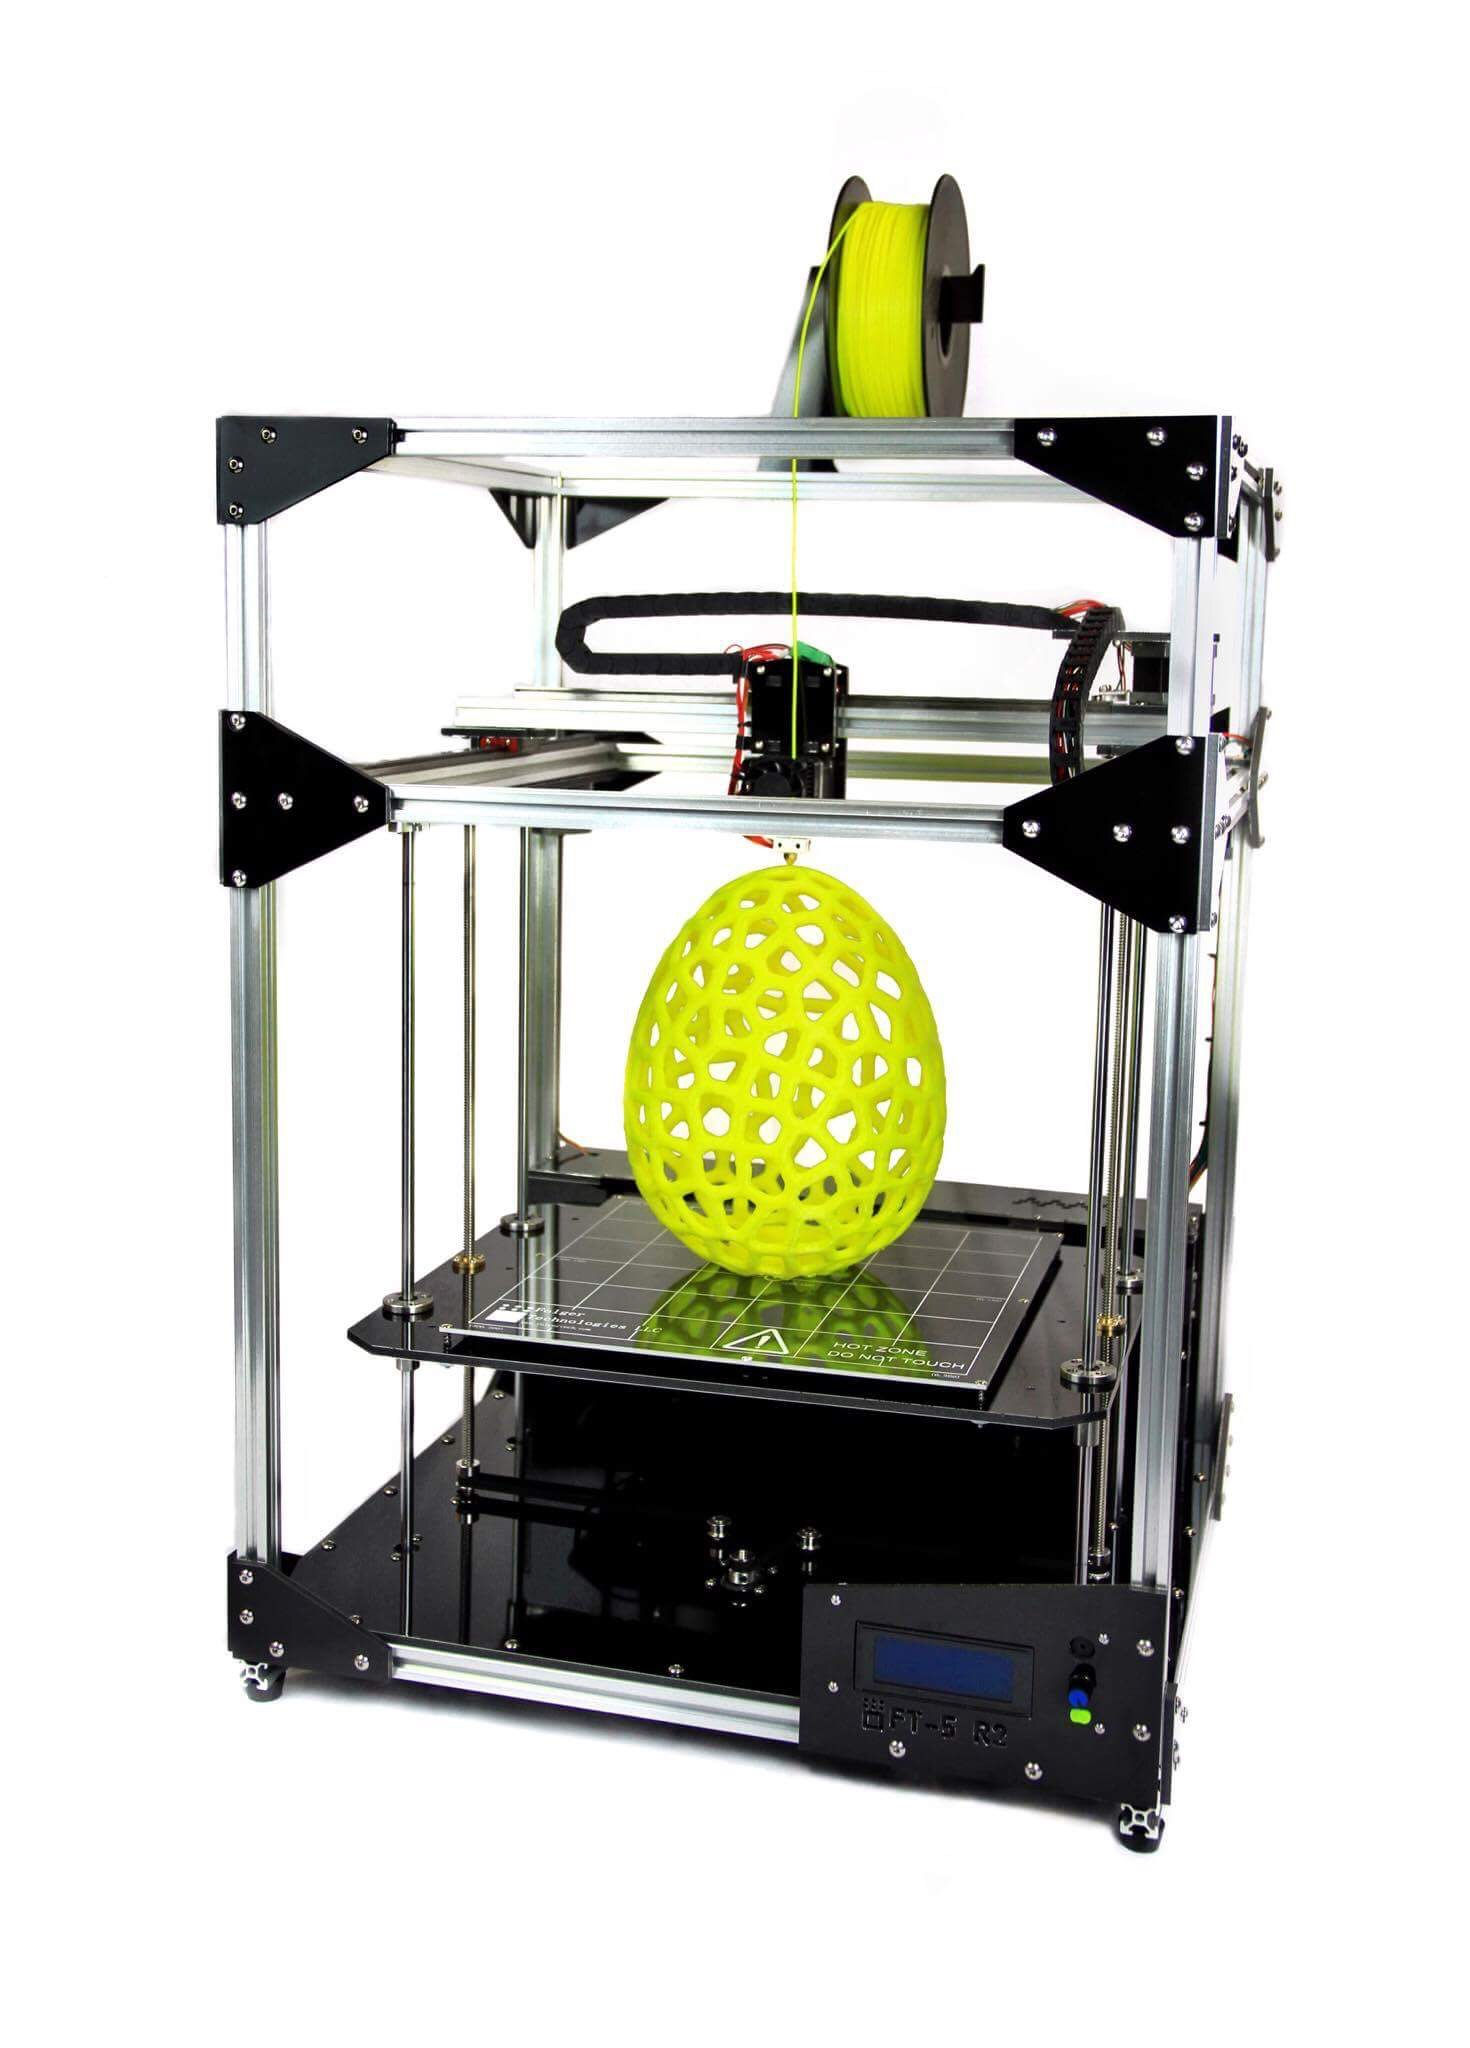 Folgertech FT-5 R2 Large Scale 3D Printer Kit